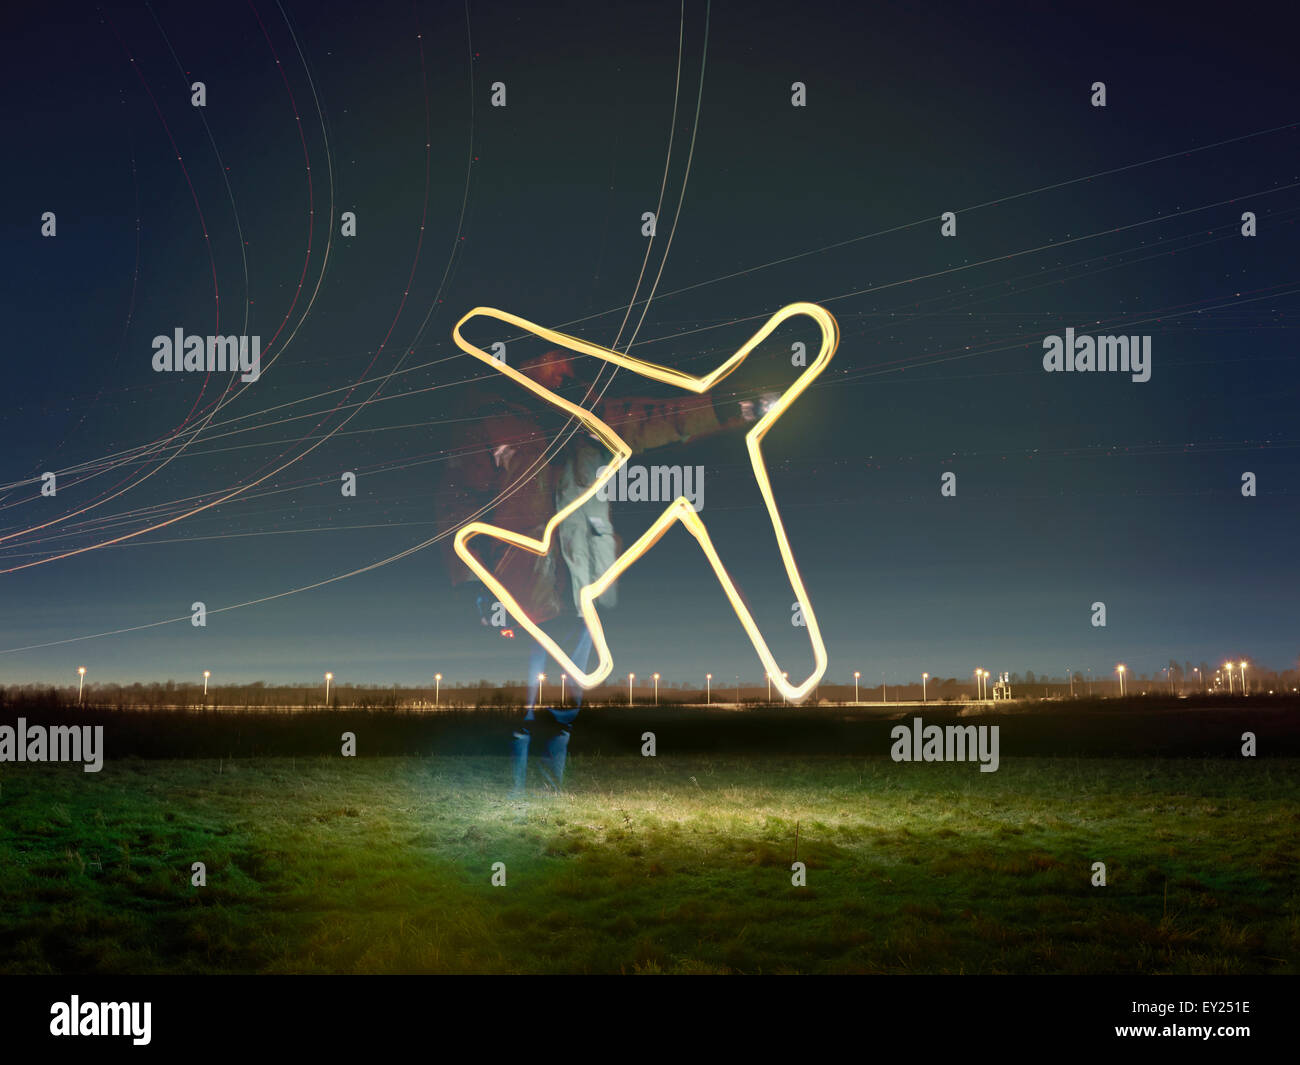 Flight path light trails and glowing airplane symbol at night, Heathrow Airport, London, UK - Stock Image